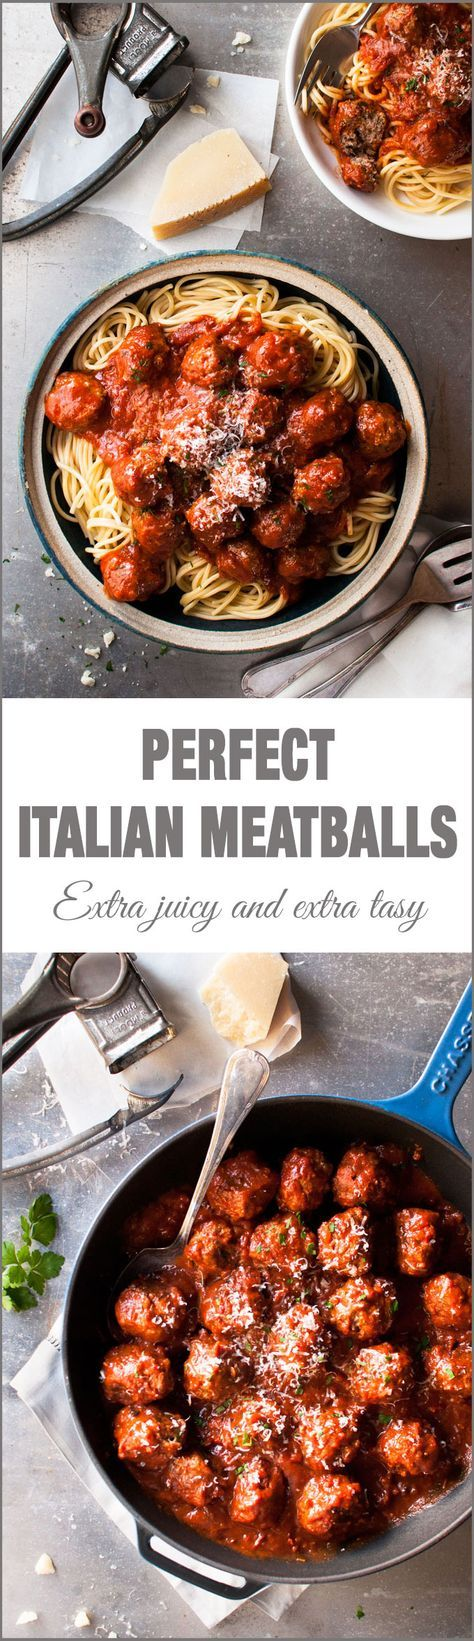 Classic Italian Meatballs - 2 little changes to the usual to make these extra soft, moist and with extra flavour!